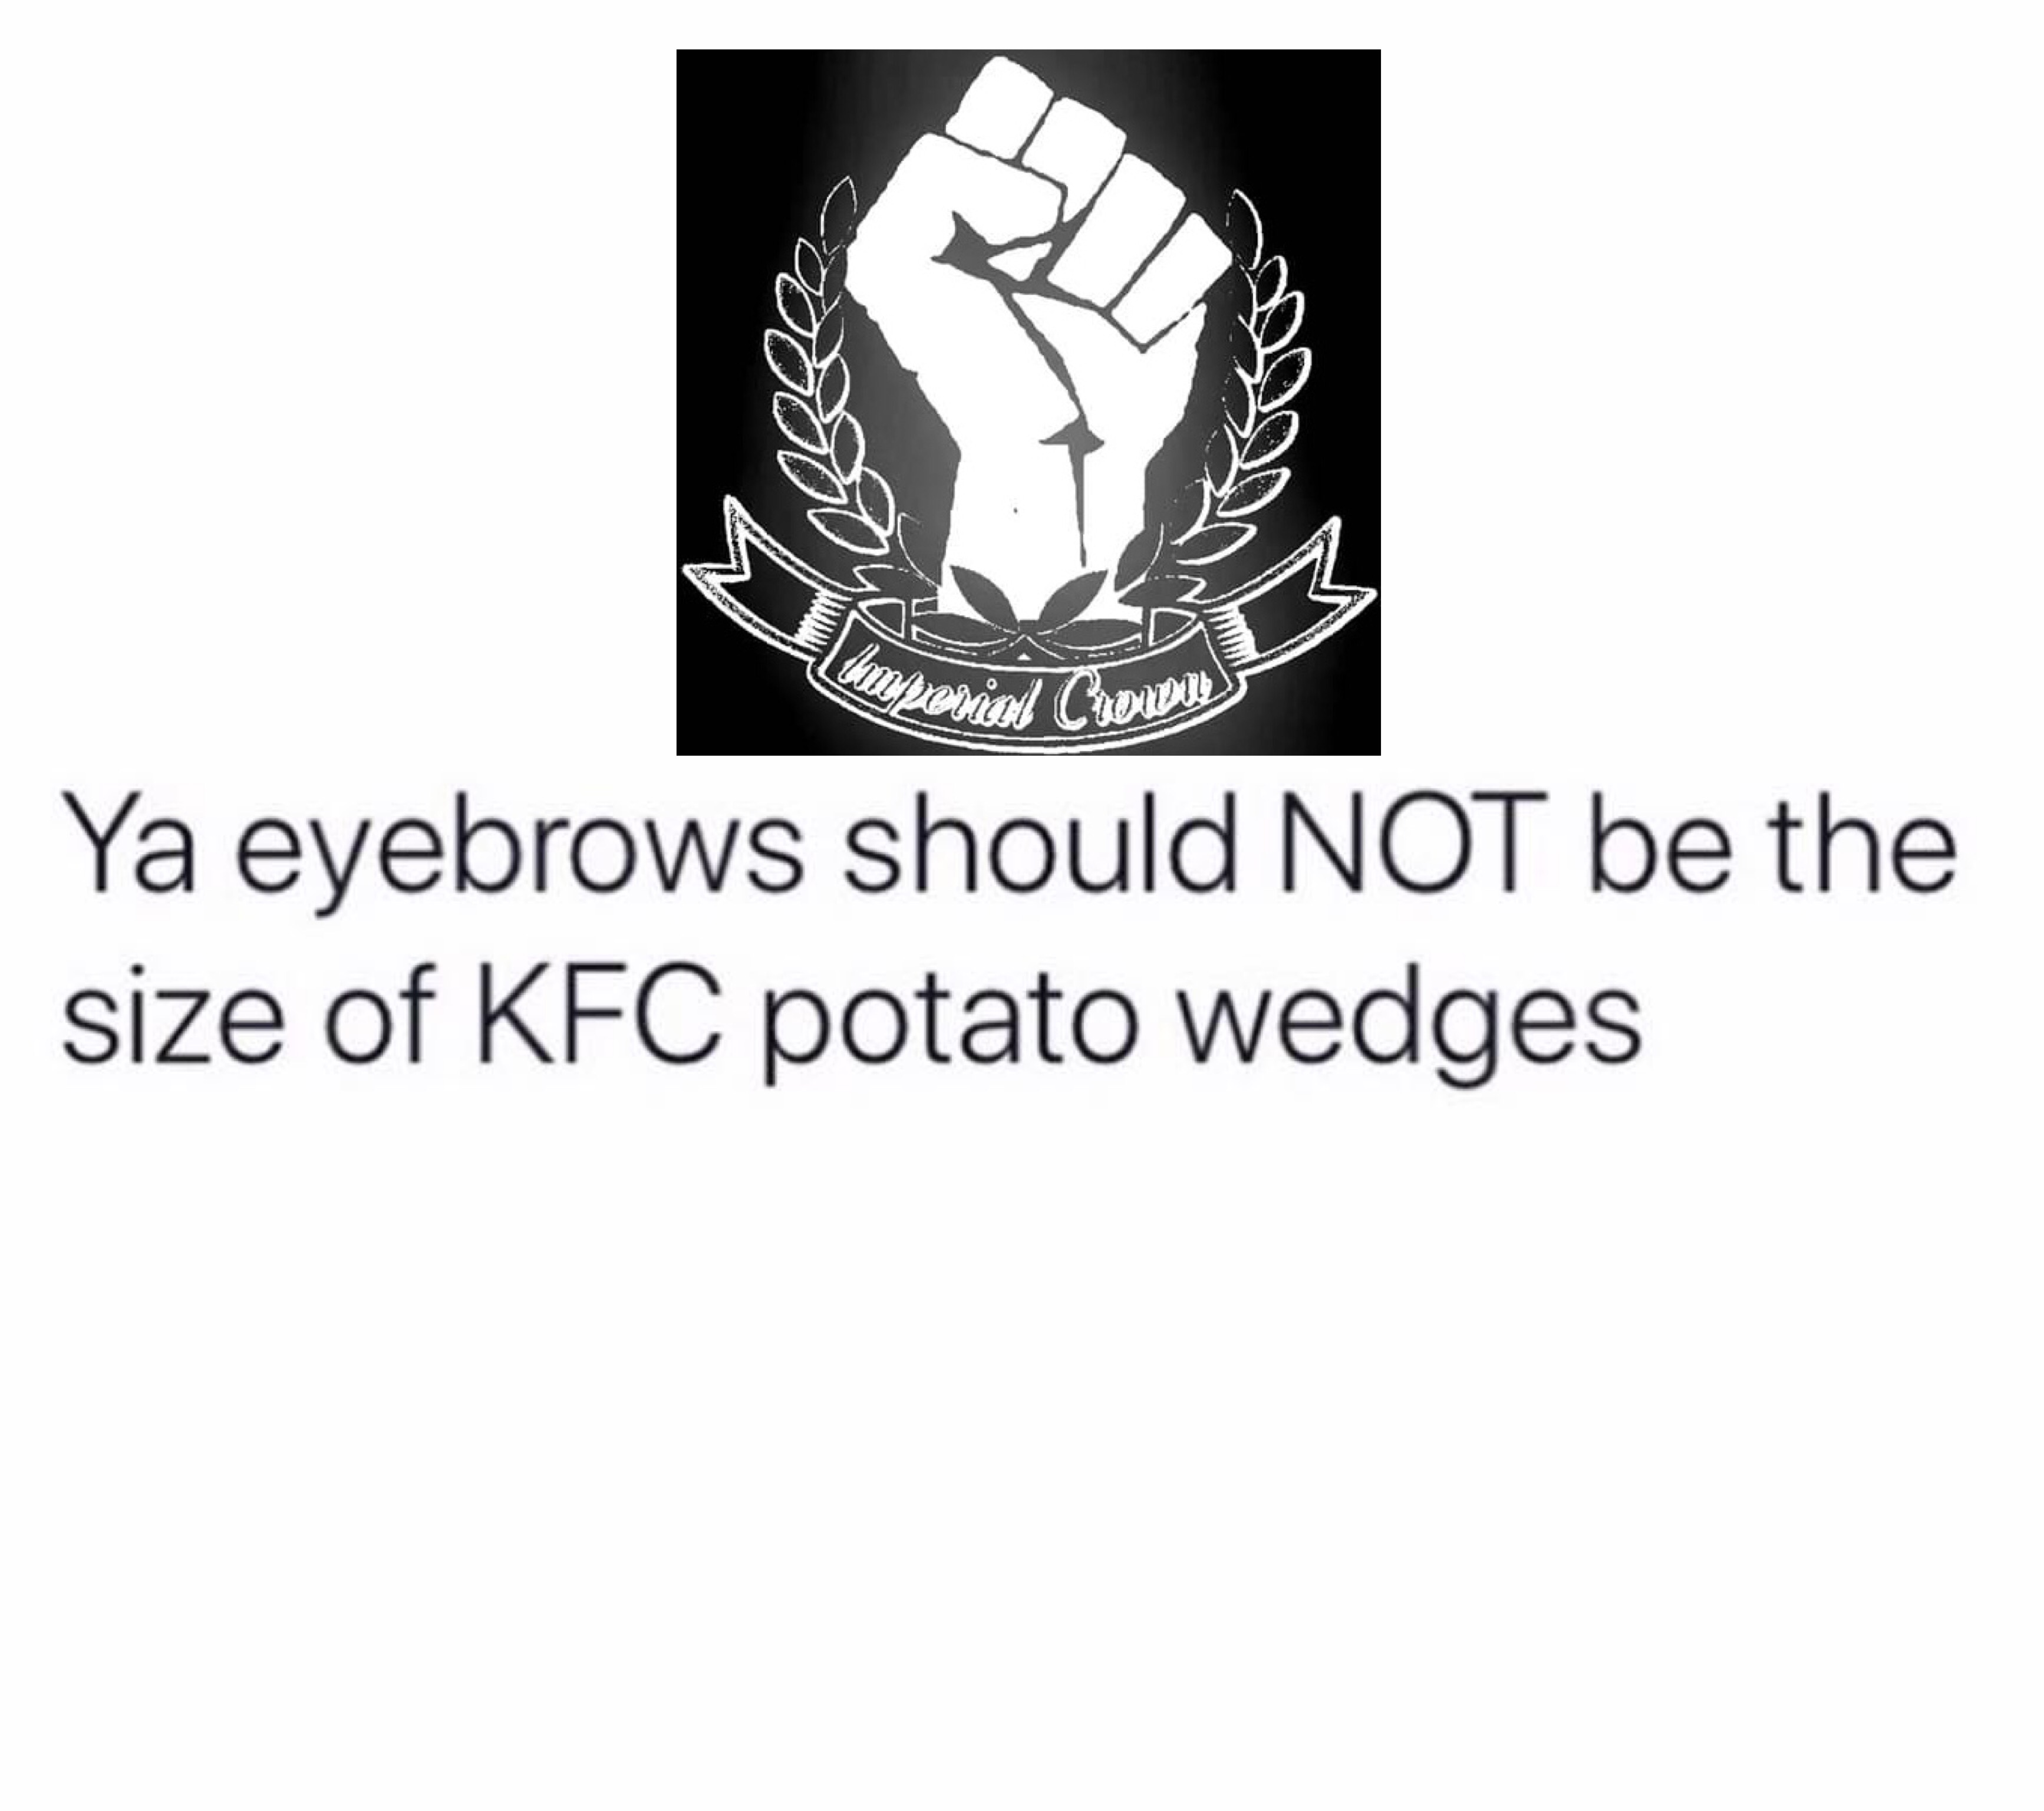 Ya eyebrows should NOT be the size of kfc potato wedges